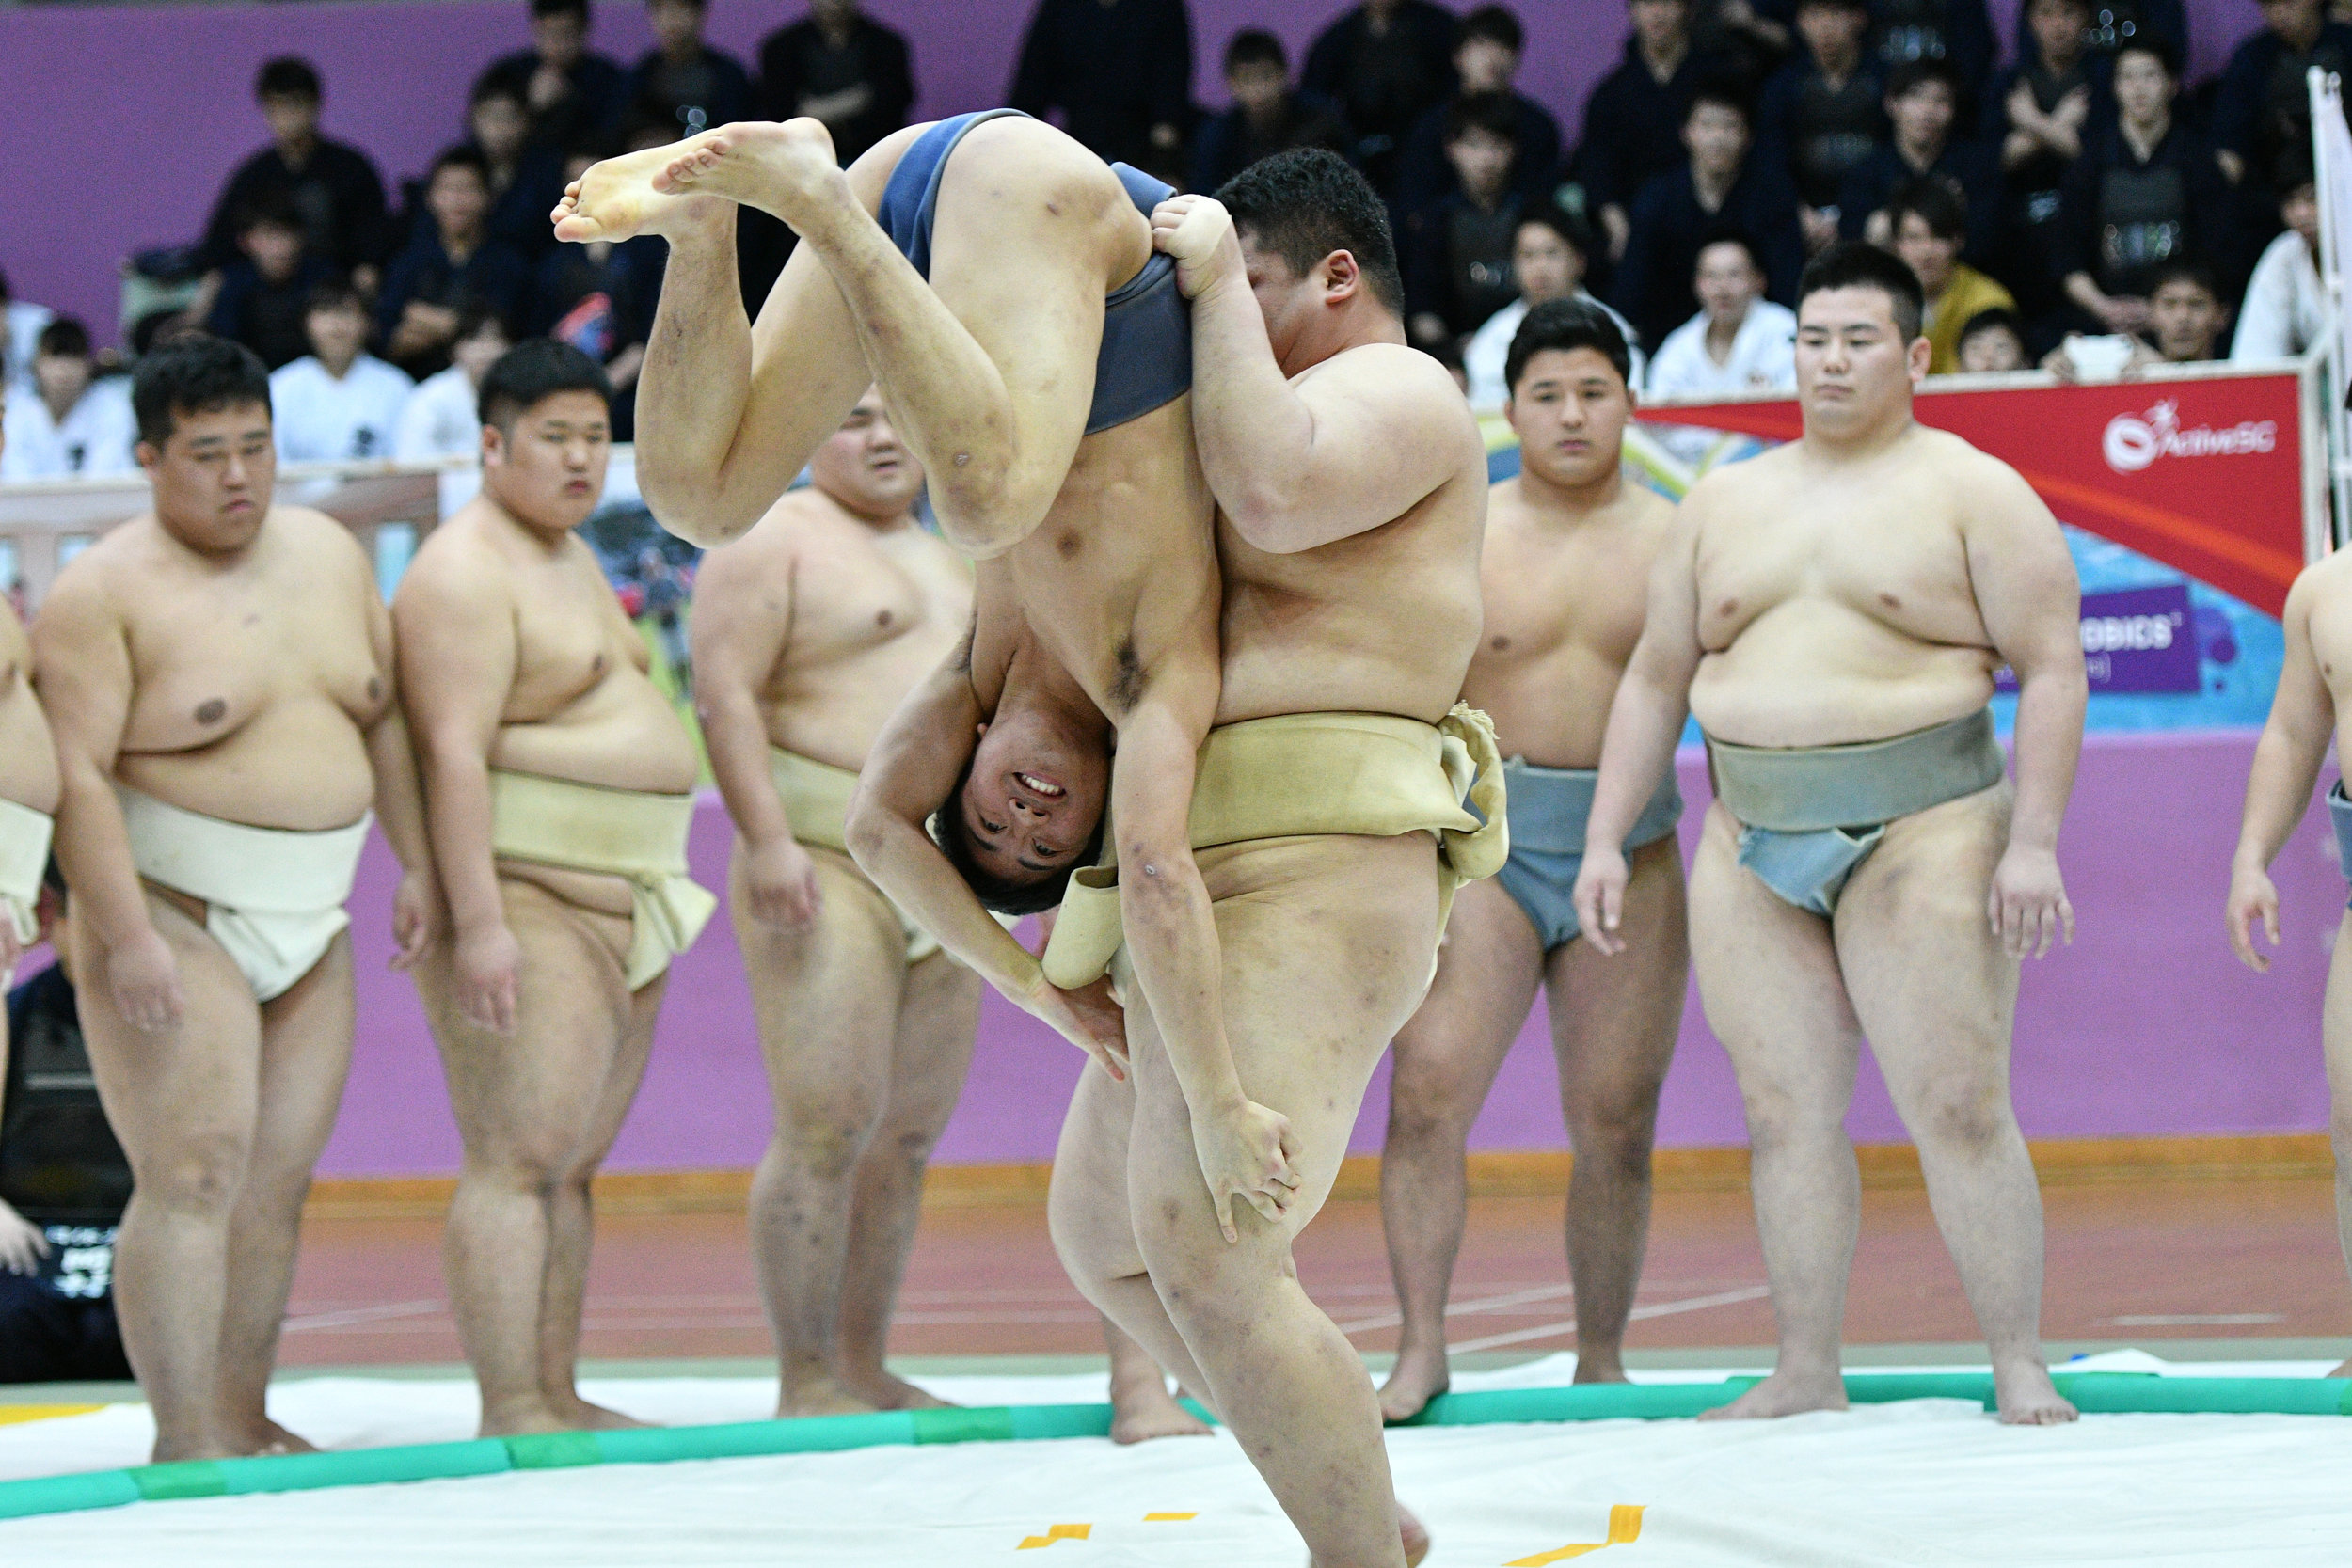 This year's Judo performance was insightful and very much entertaining.